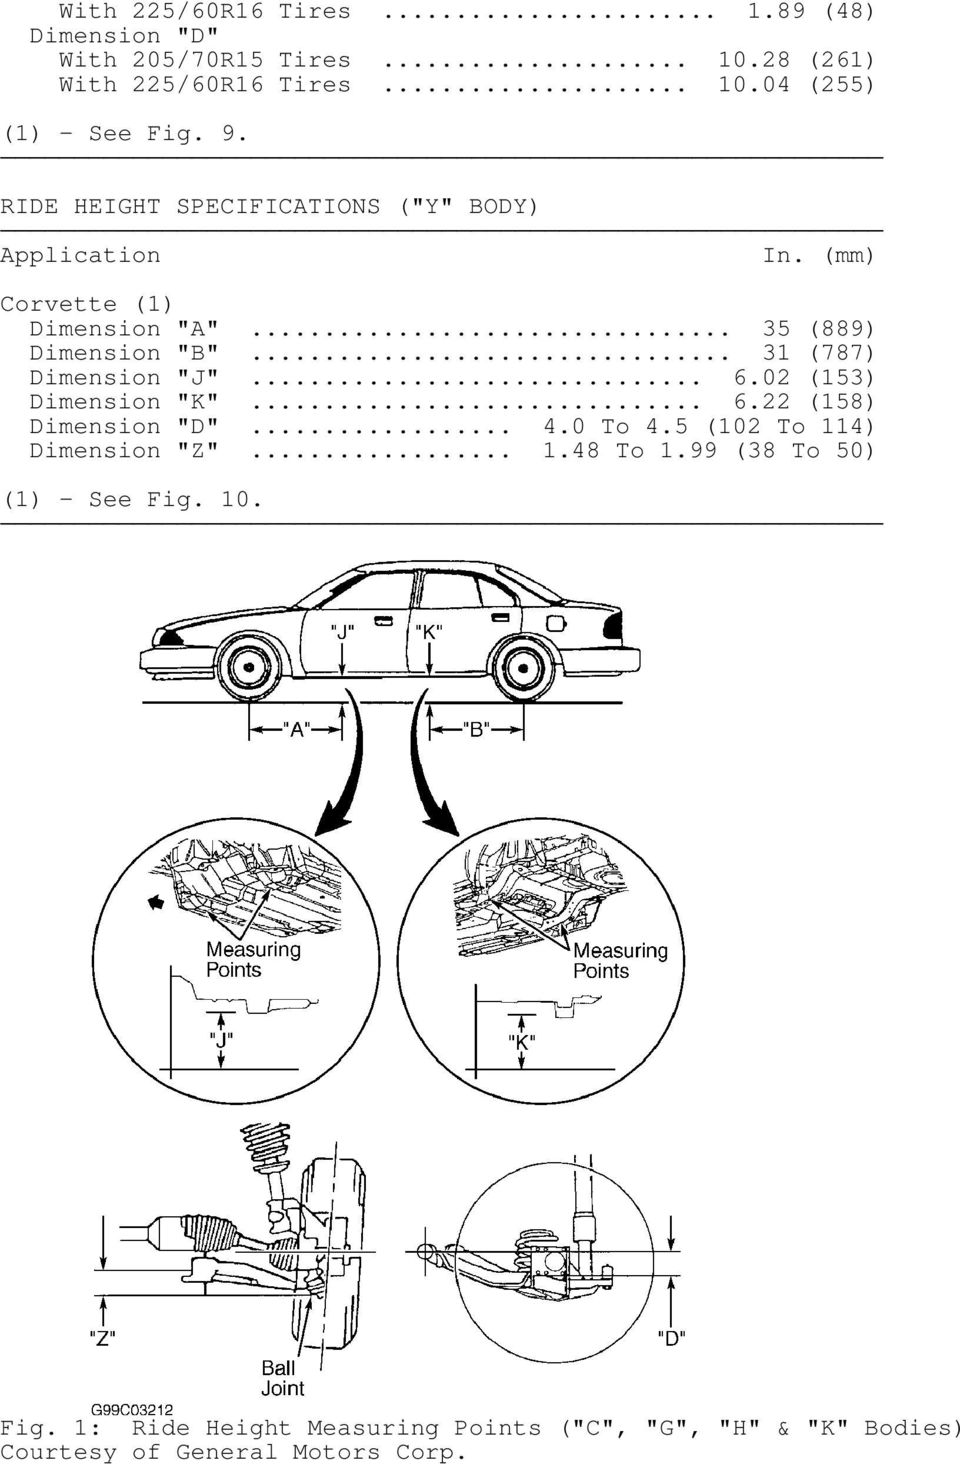 wheel alignment specifications procedures pdf Chevy 4 3V6 Pilot Bearing 31 787 dimension j 6 02 153